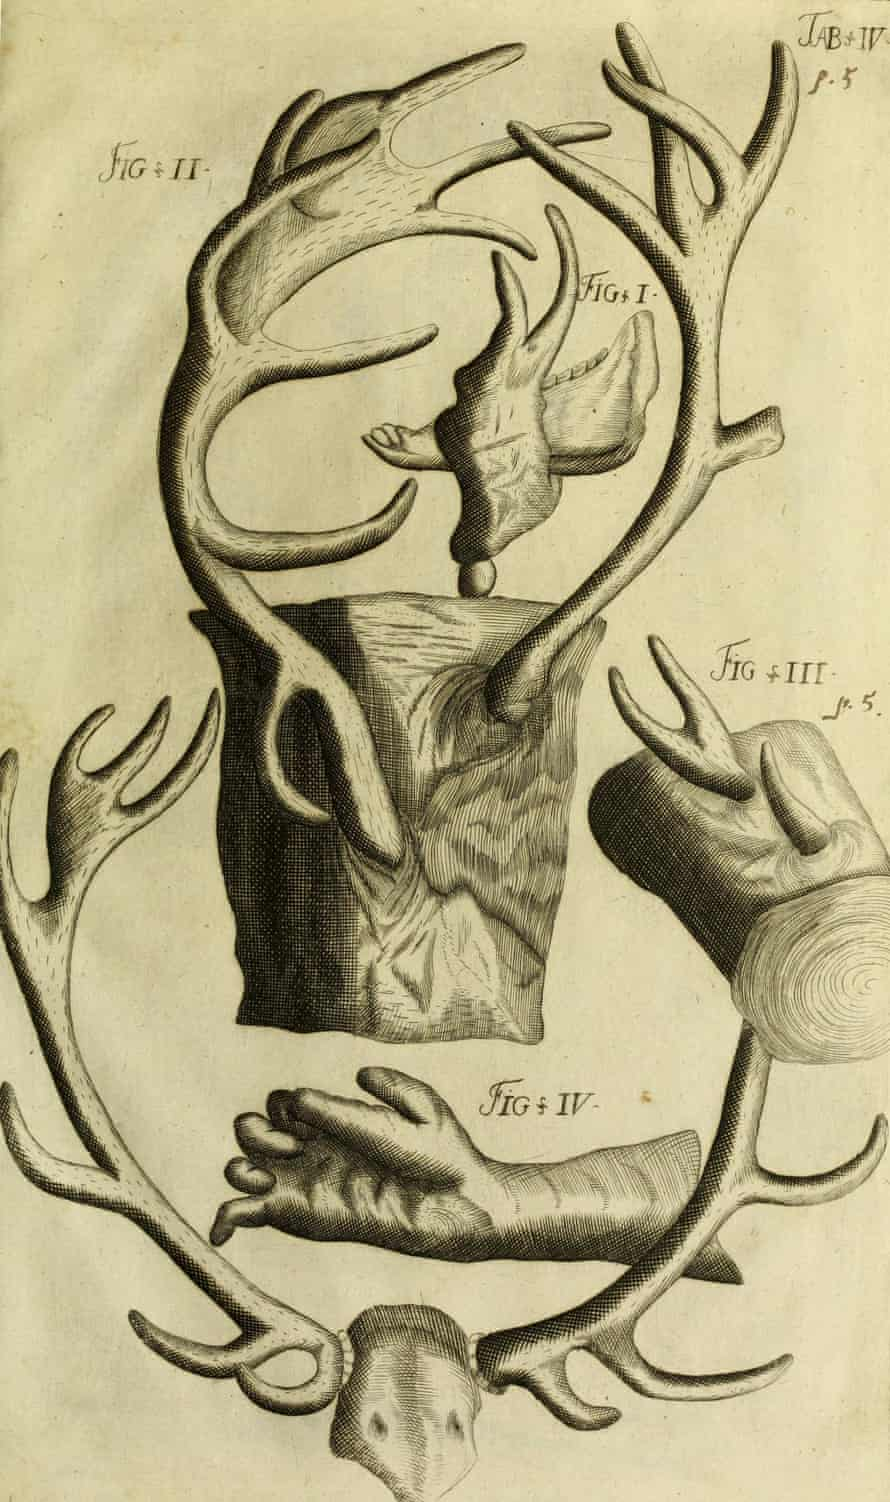 Worm's jawbone in 1698